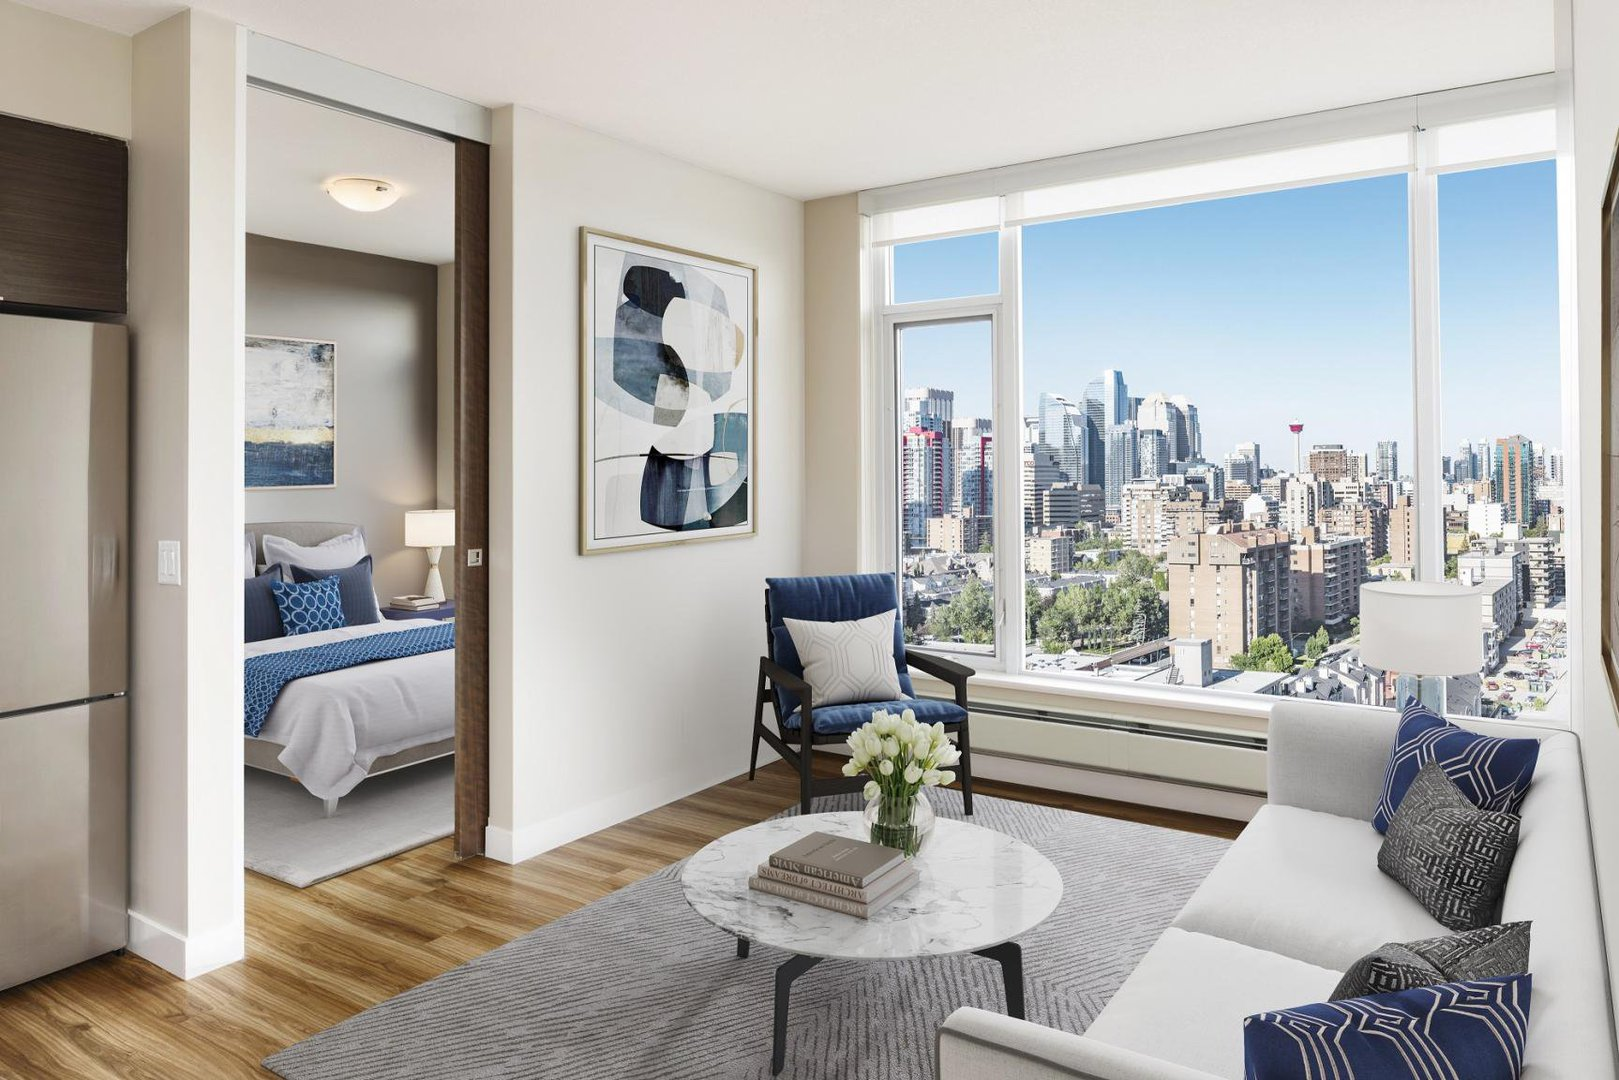 Zillow Apartments For Rent, zillow apartments for rent near me, zillow apartments for rent nj, zillow apartments for rent chicago, zillow apartments for rent nyc, zillow apartments for rent los angeles, zillow apartments for rent brooklyn, zillow apartments for rent ct, zillow apartments for rent boston,